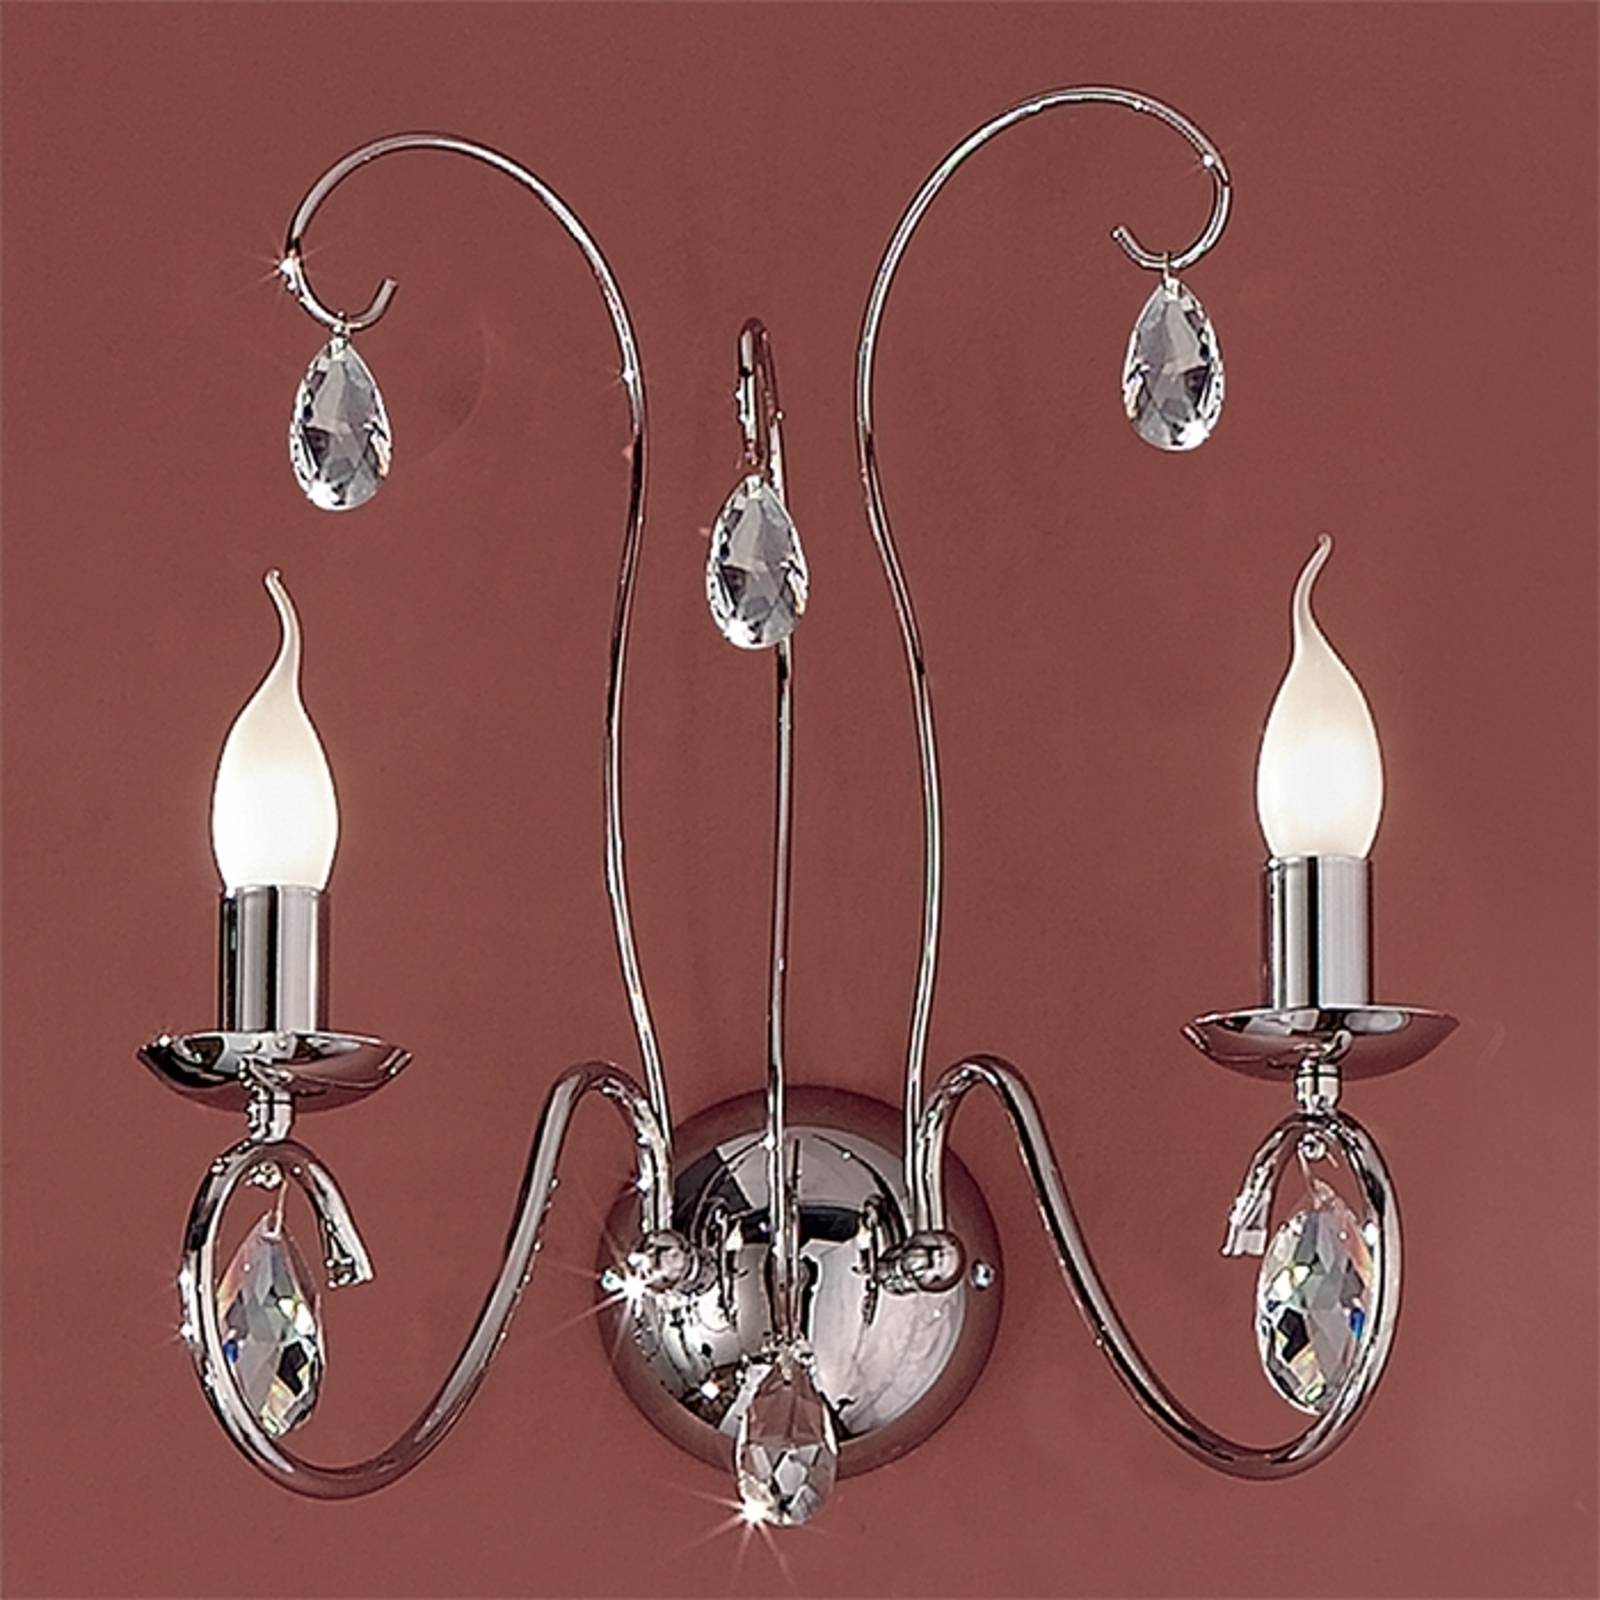 Fioretto Wall Light Graceful Two Bulbs Chrome from Orion